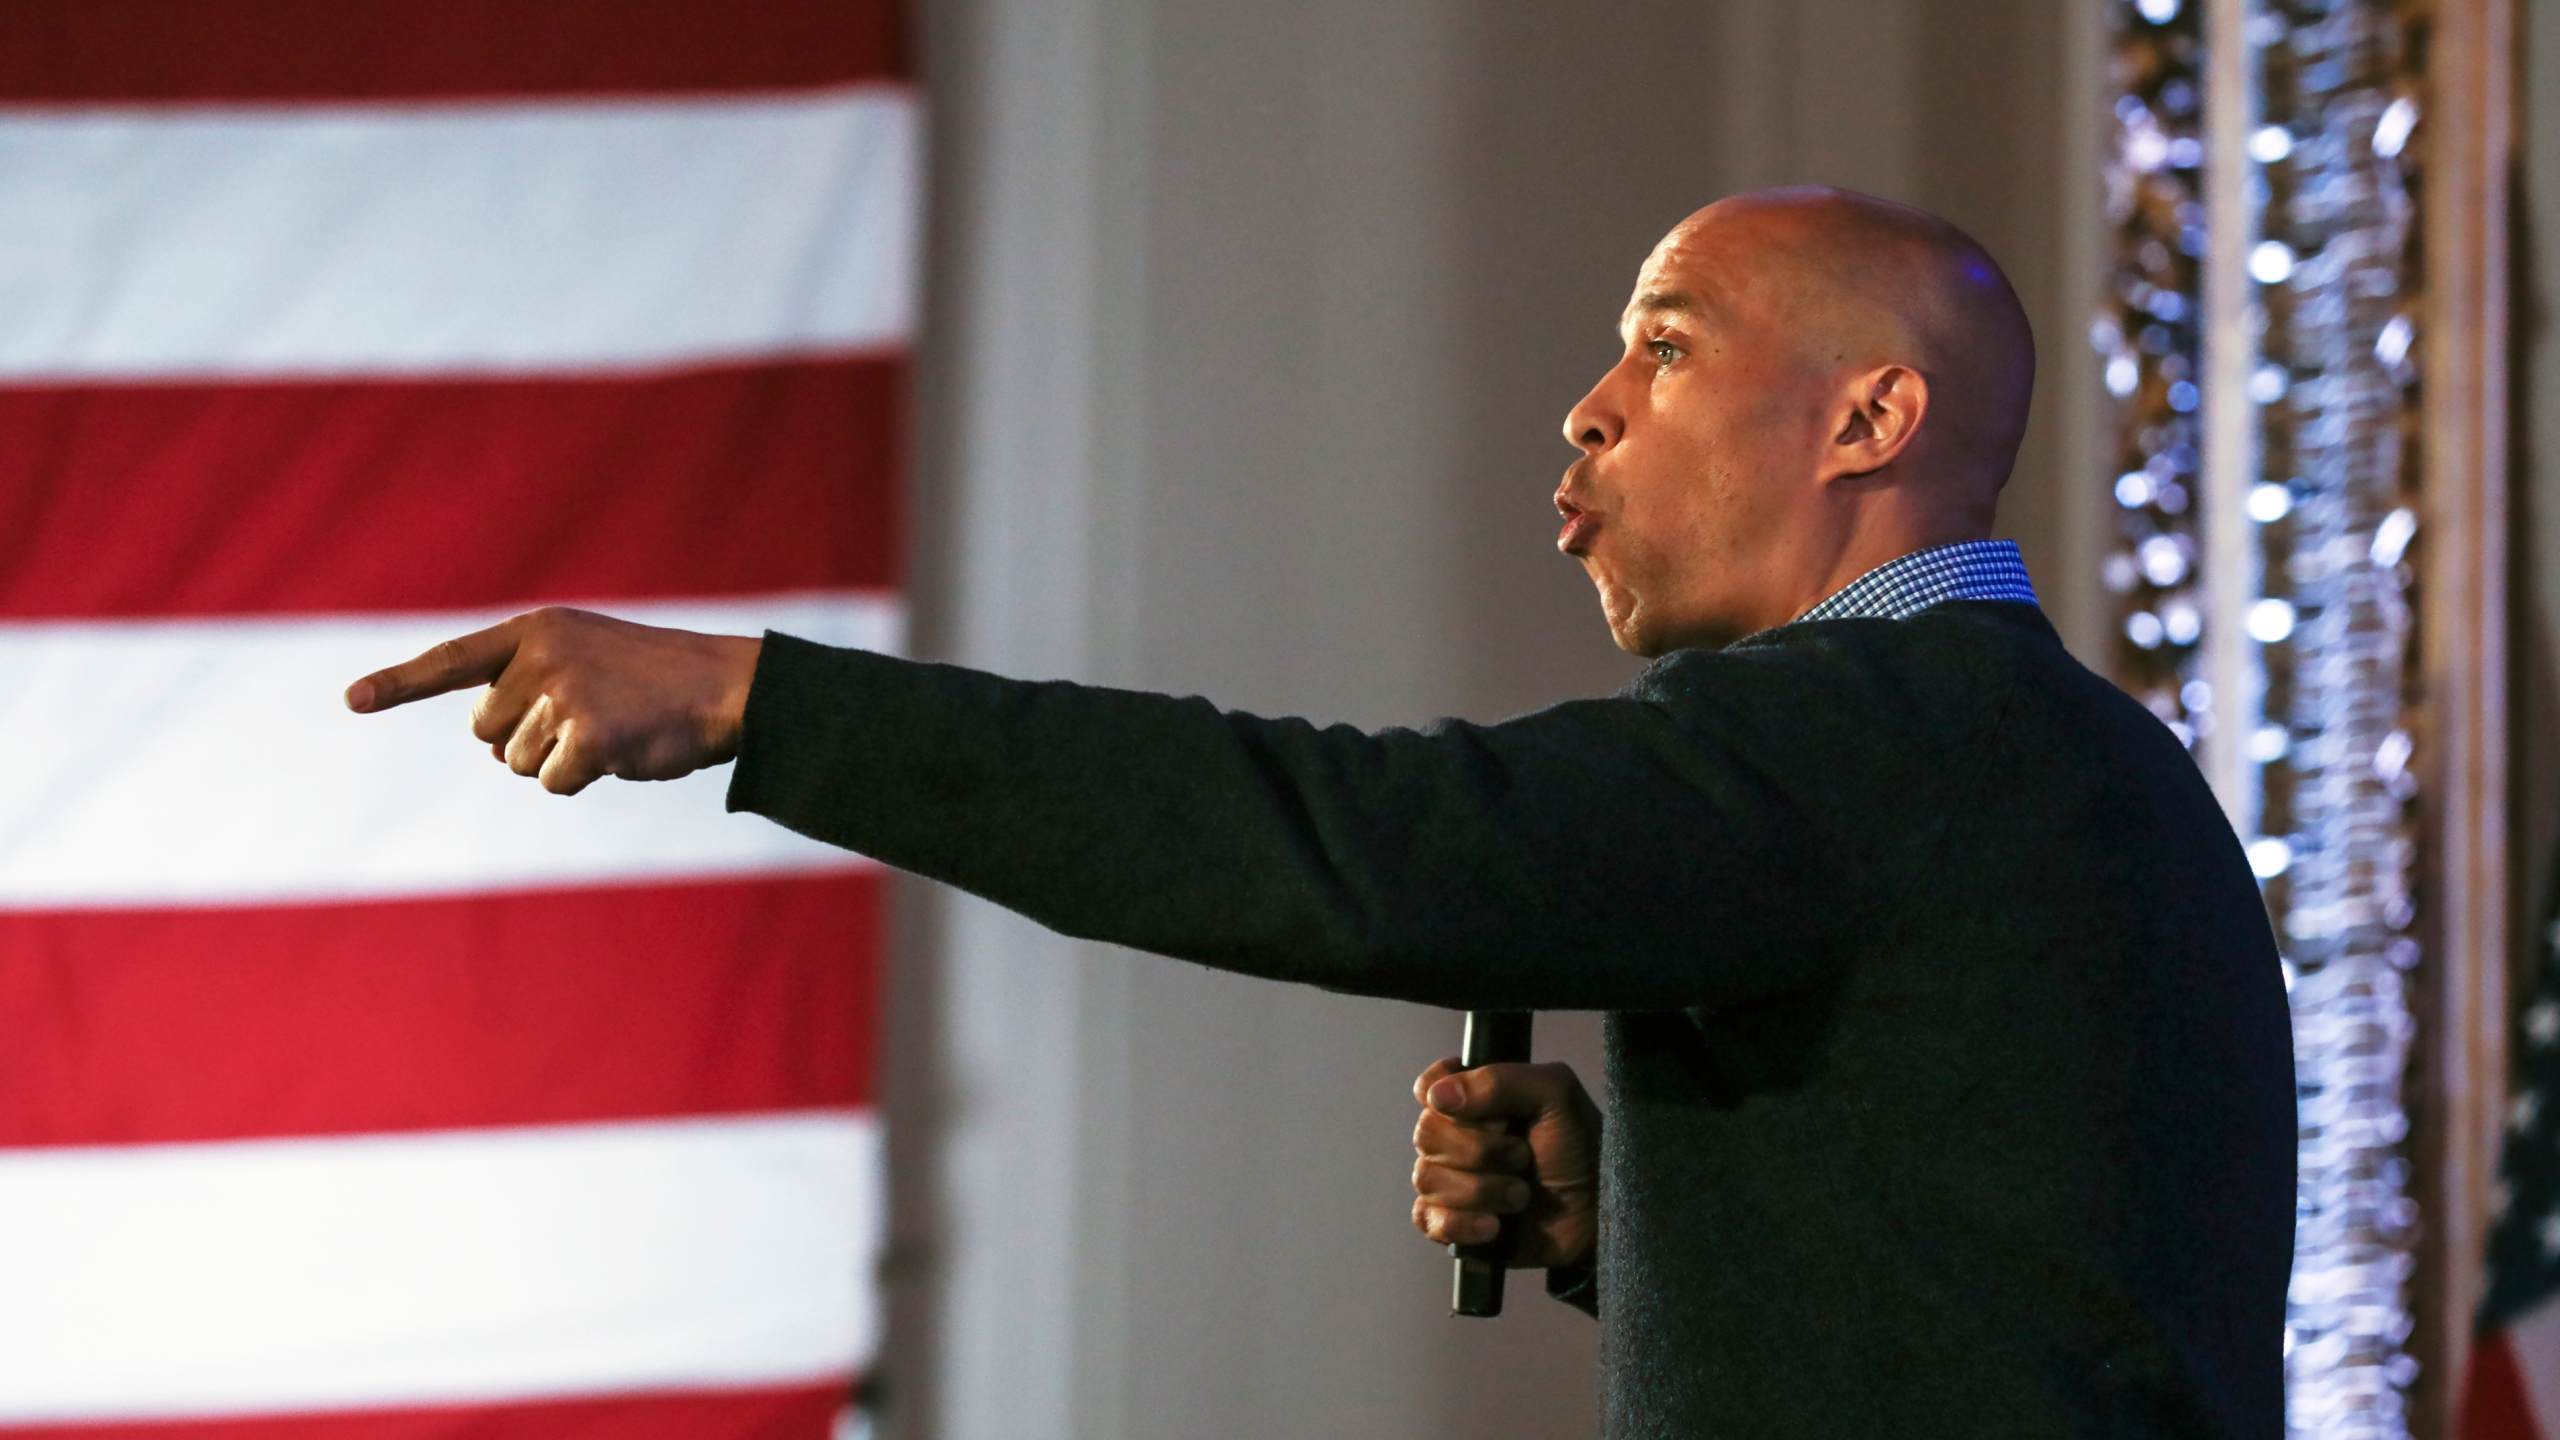 Election_2020_New_Hampshire_Booker_71372-159532.jpg74614404